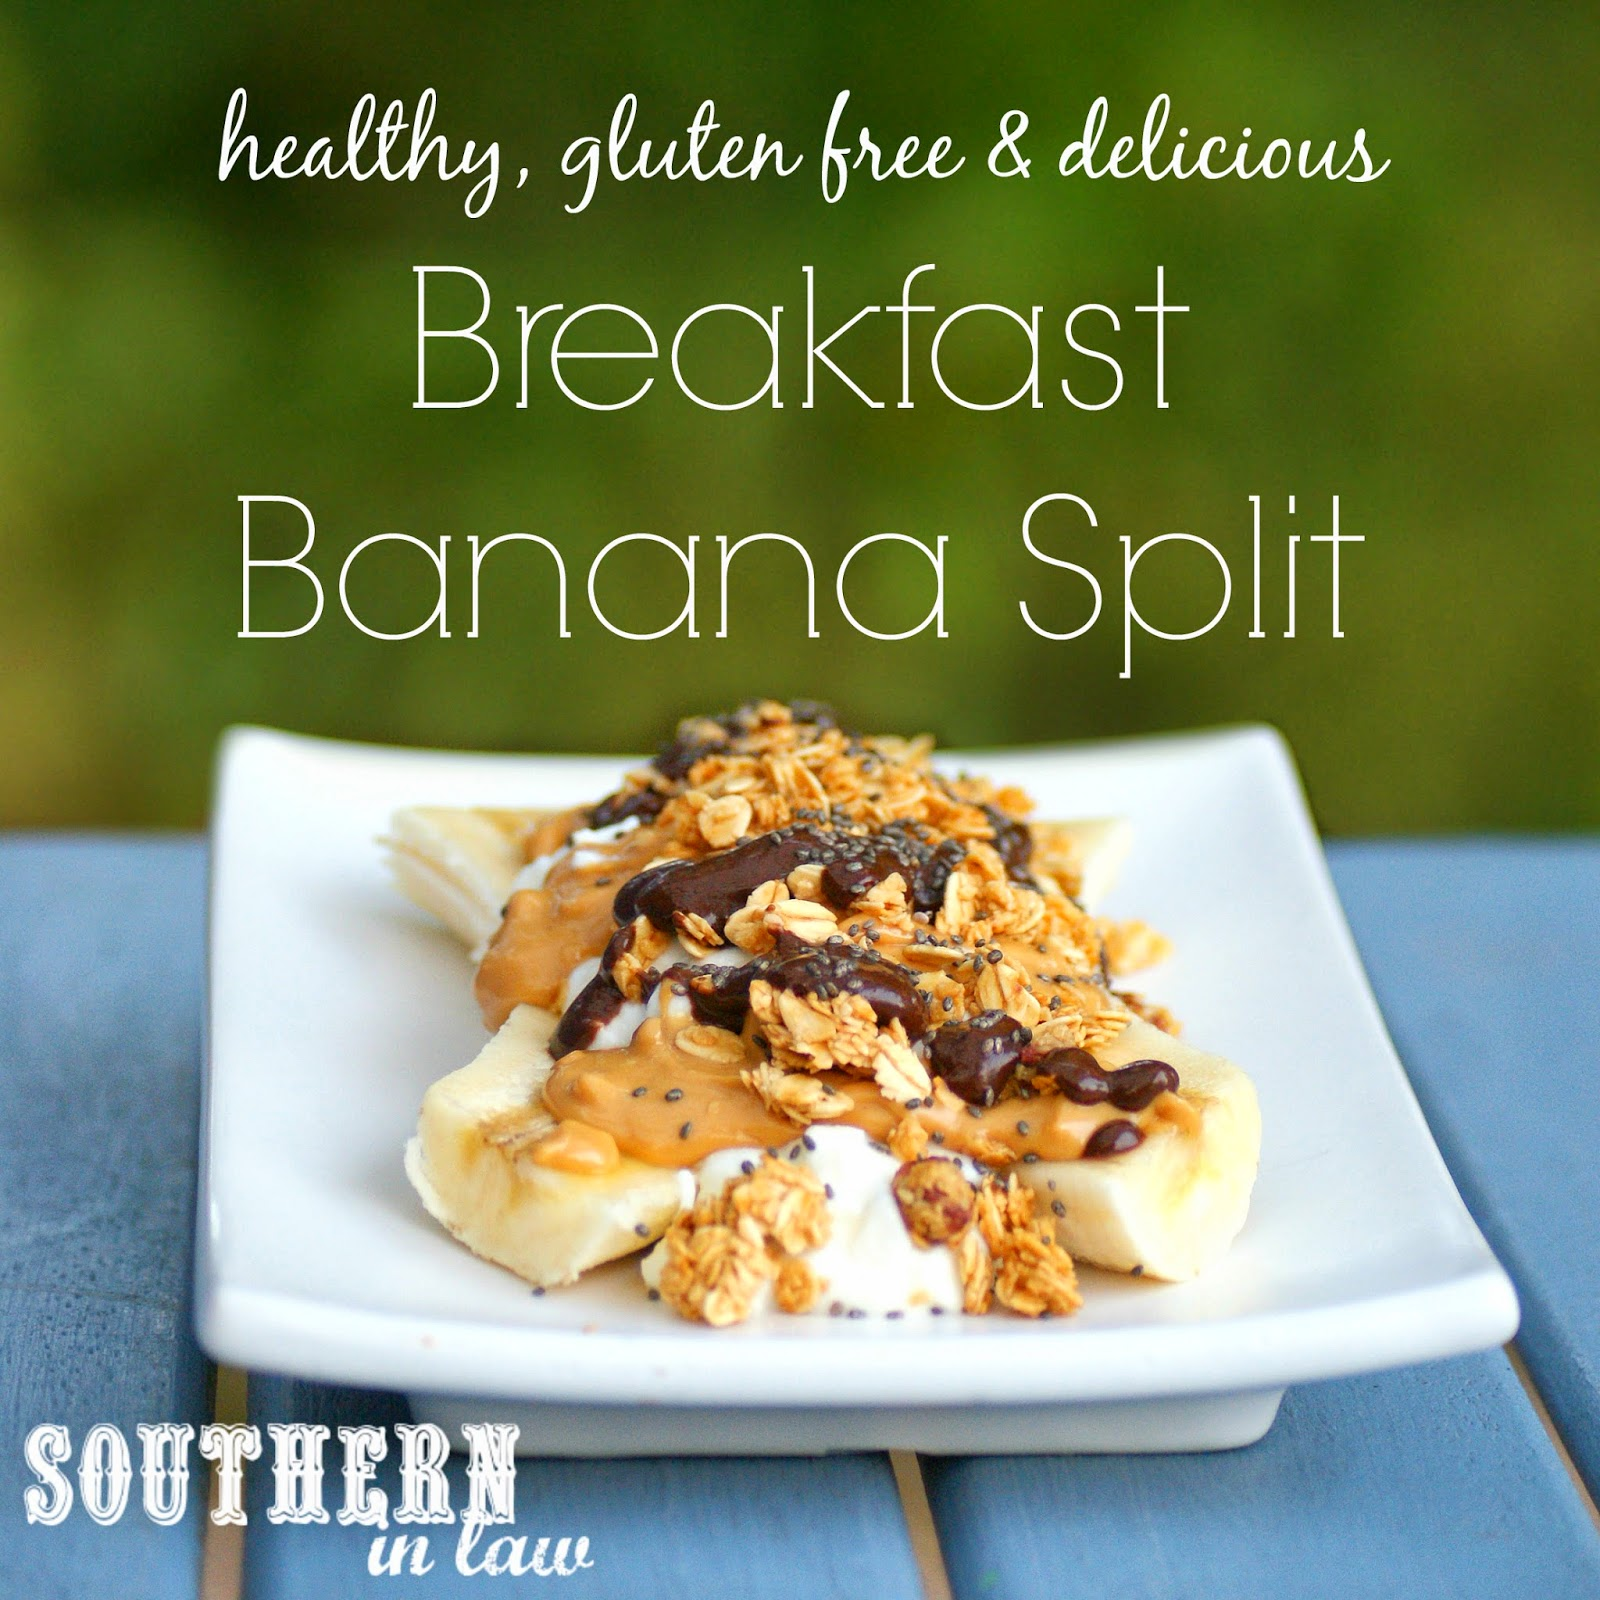 Healthy Banana Split Recipe - Gluten free, low fat, clean eating friendly, sugar free